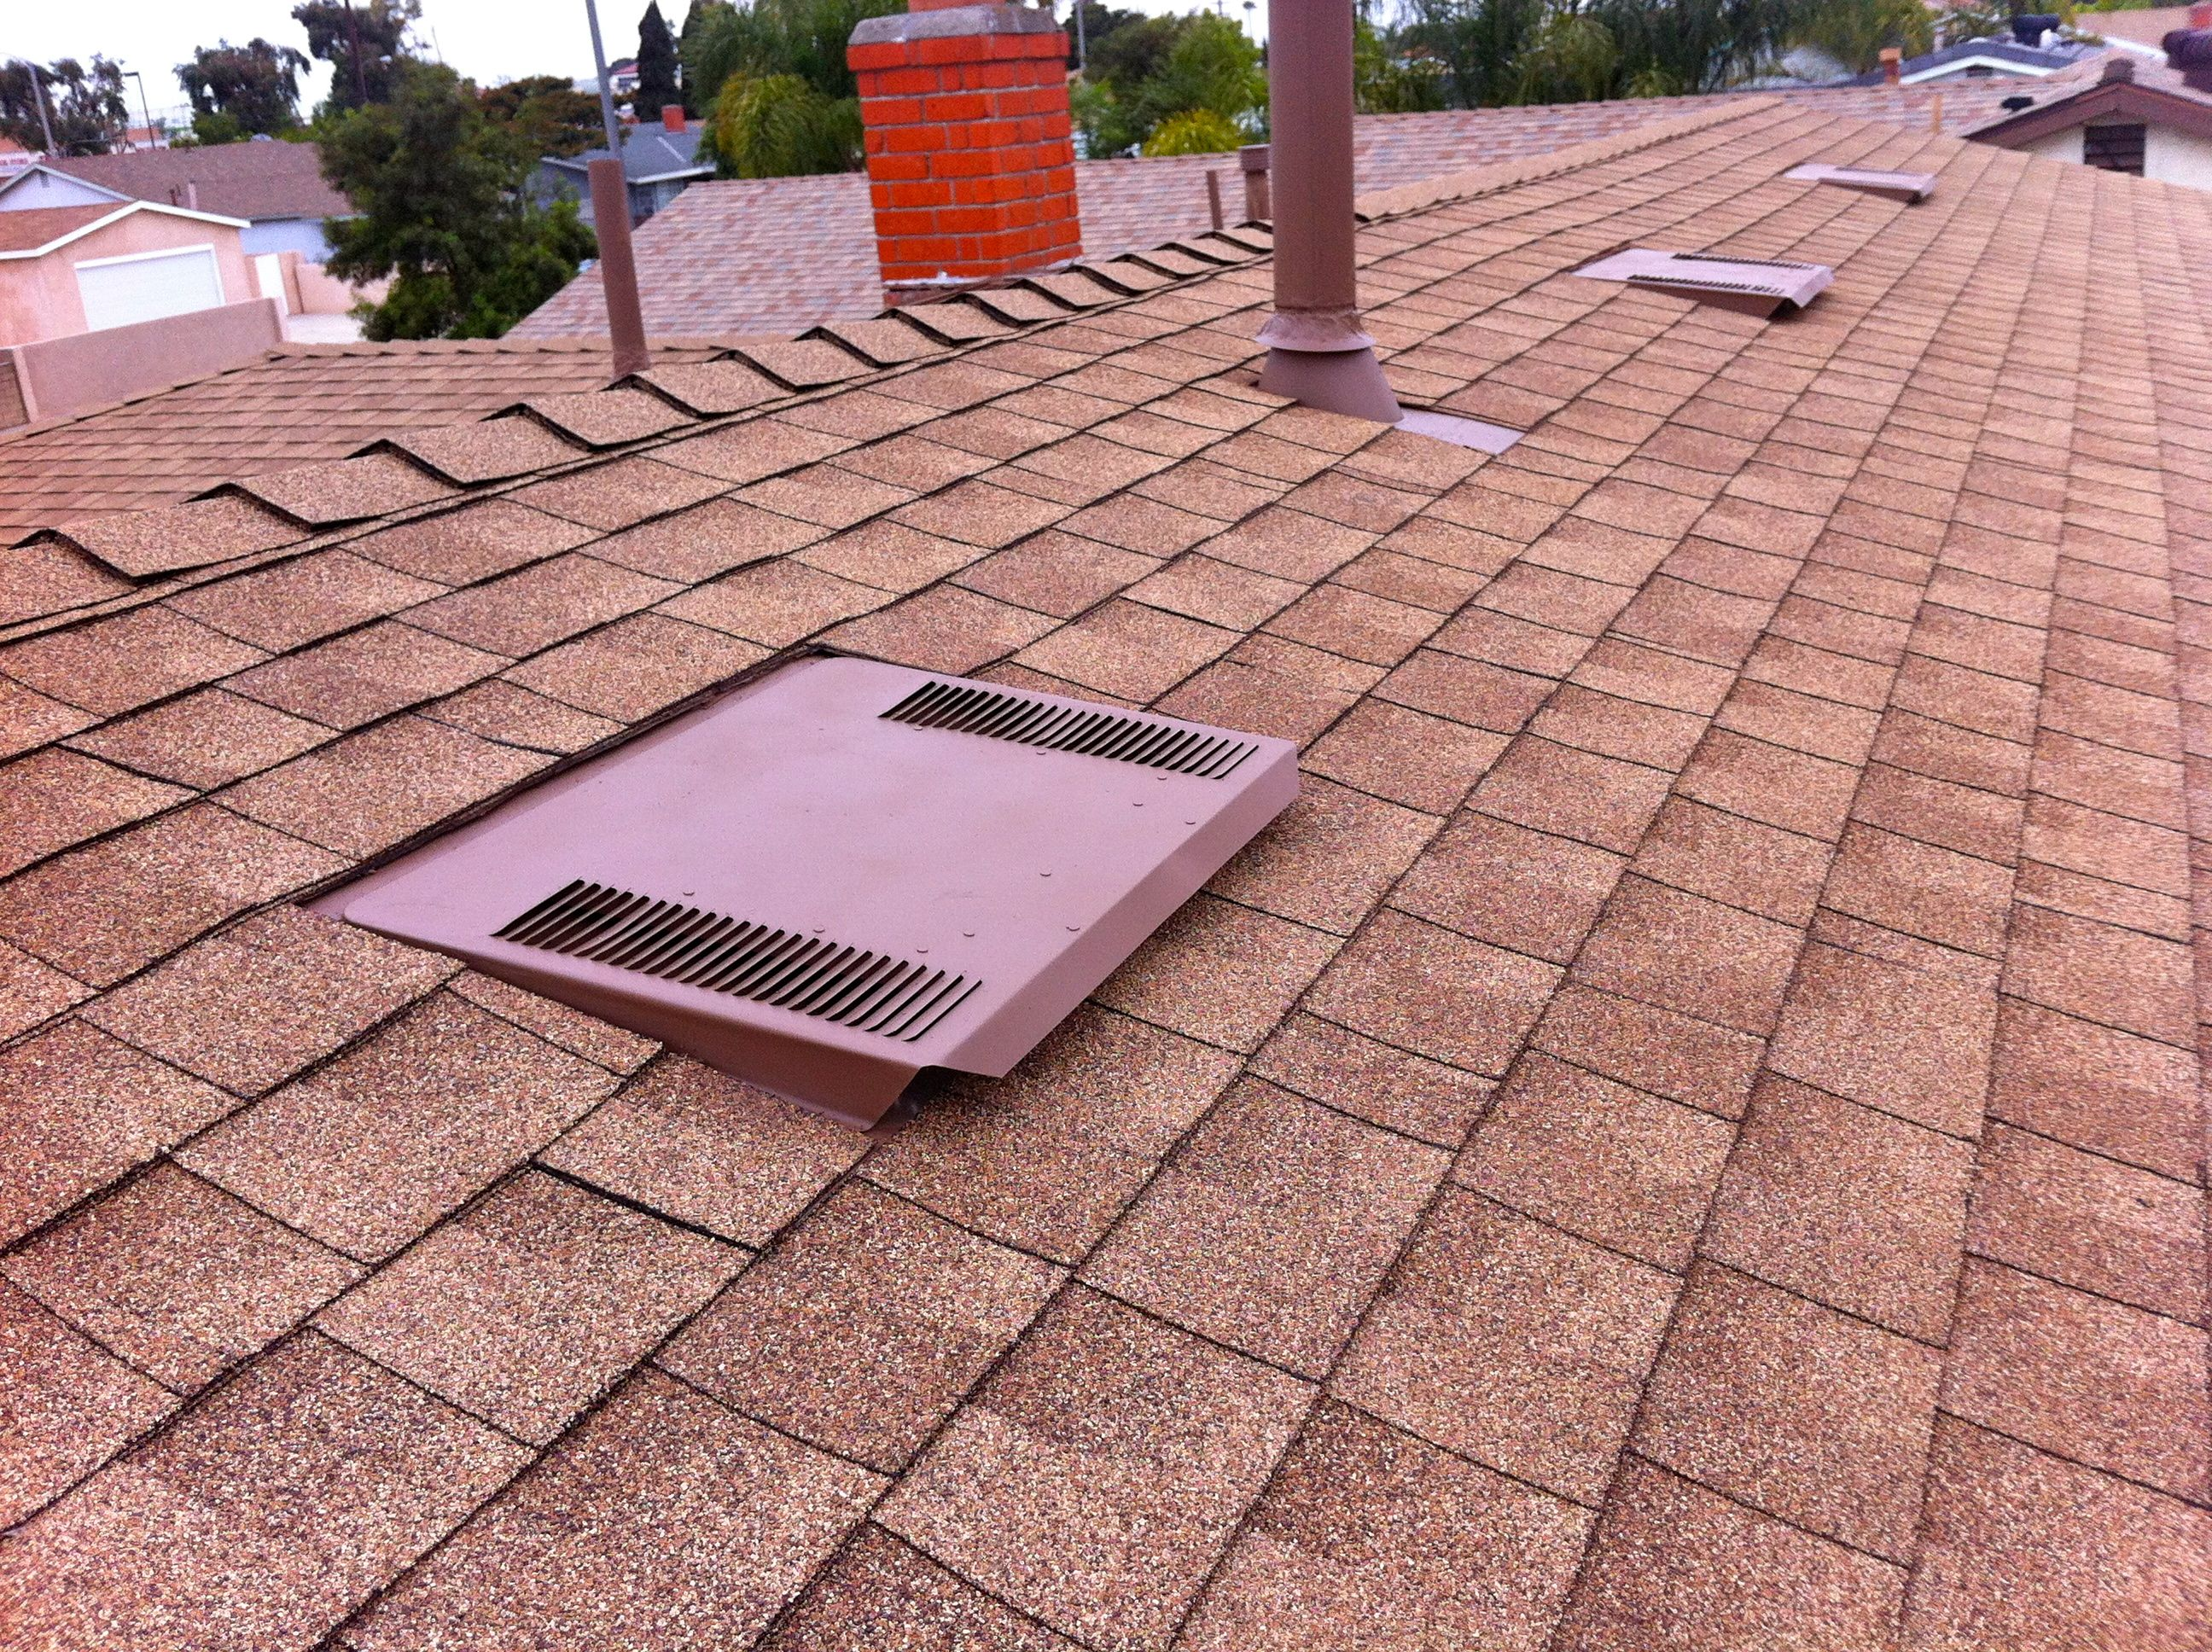 Wwwchandlersroofingcom Low Profile O Hagin Vents Installed With